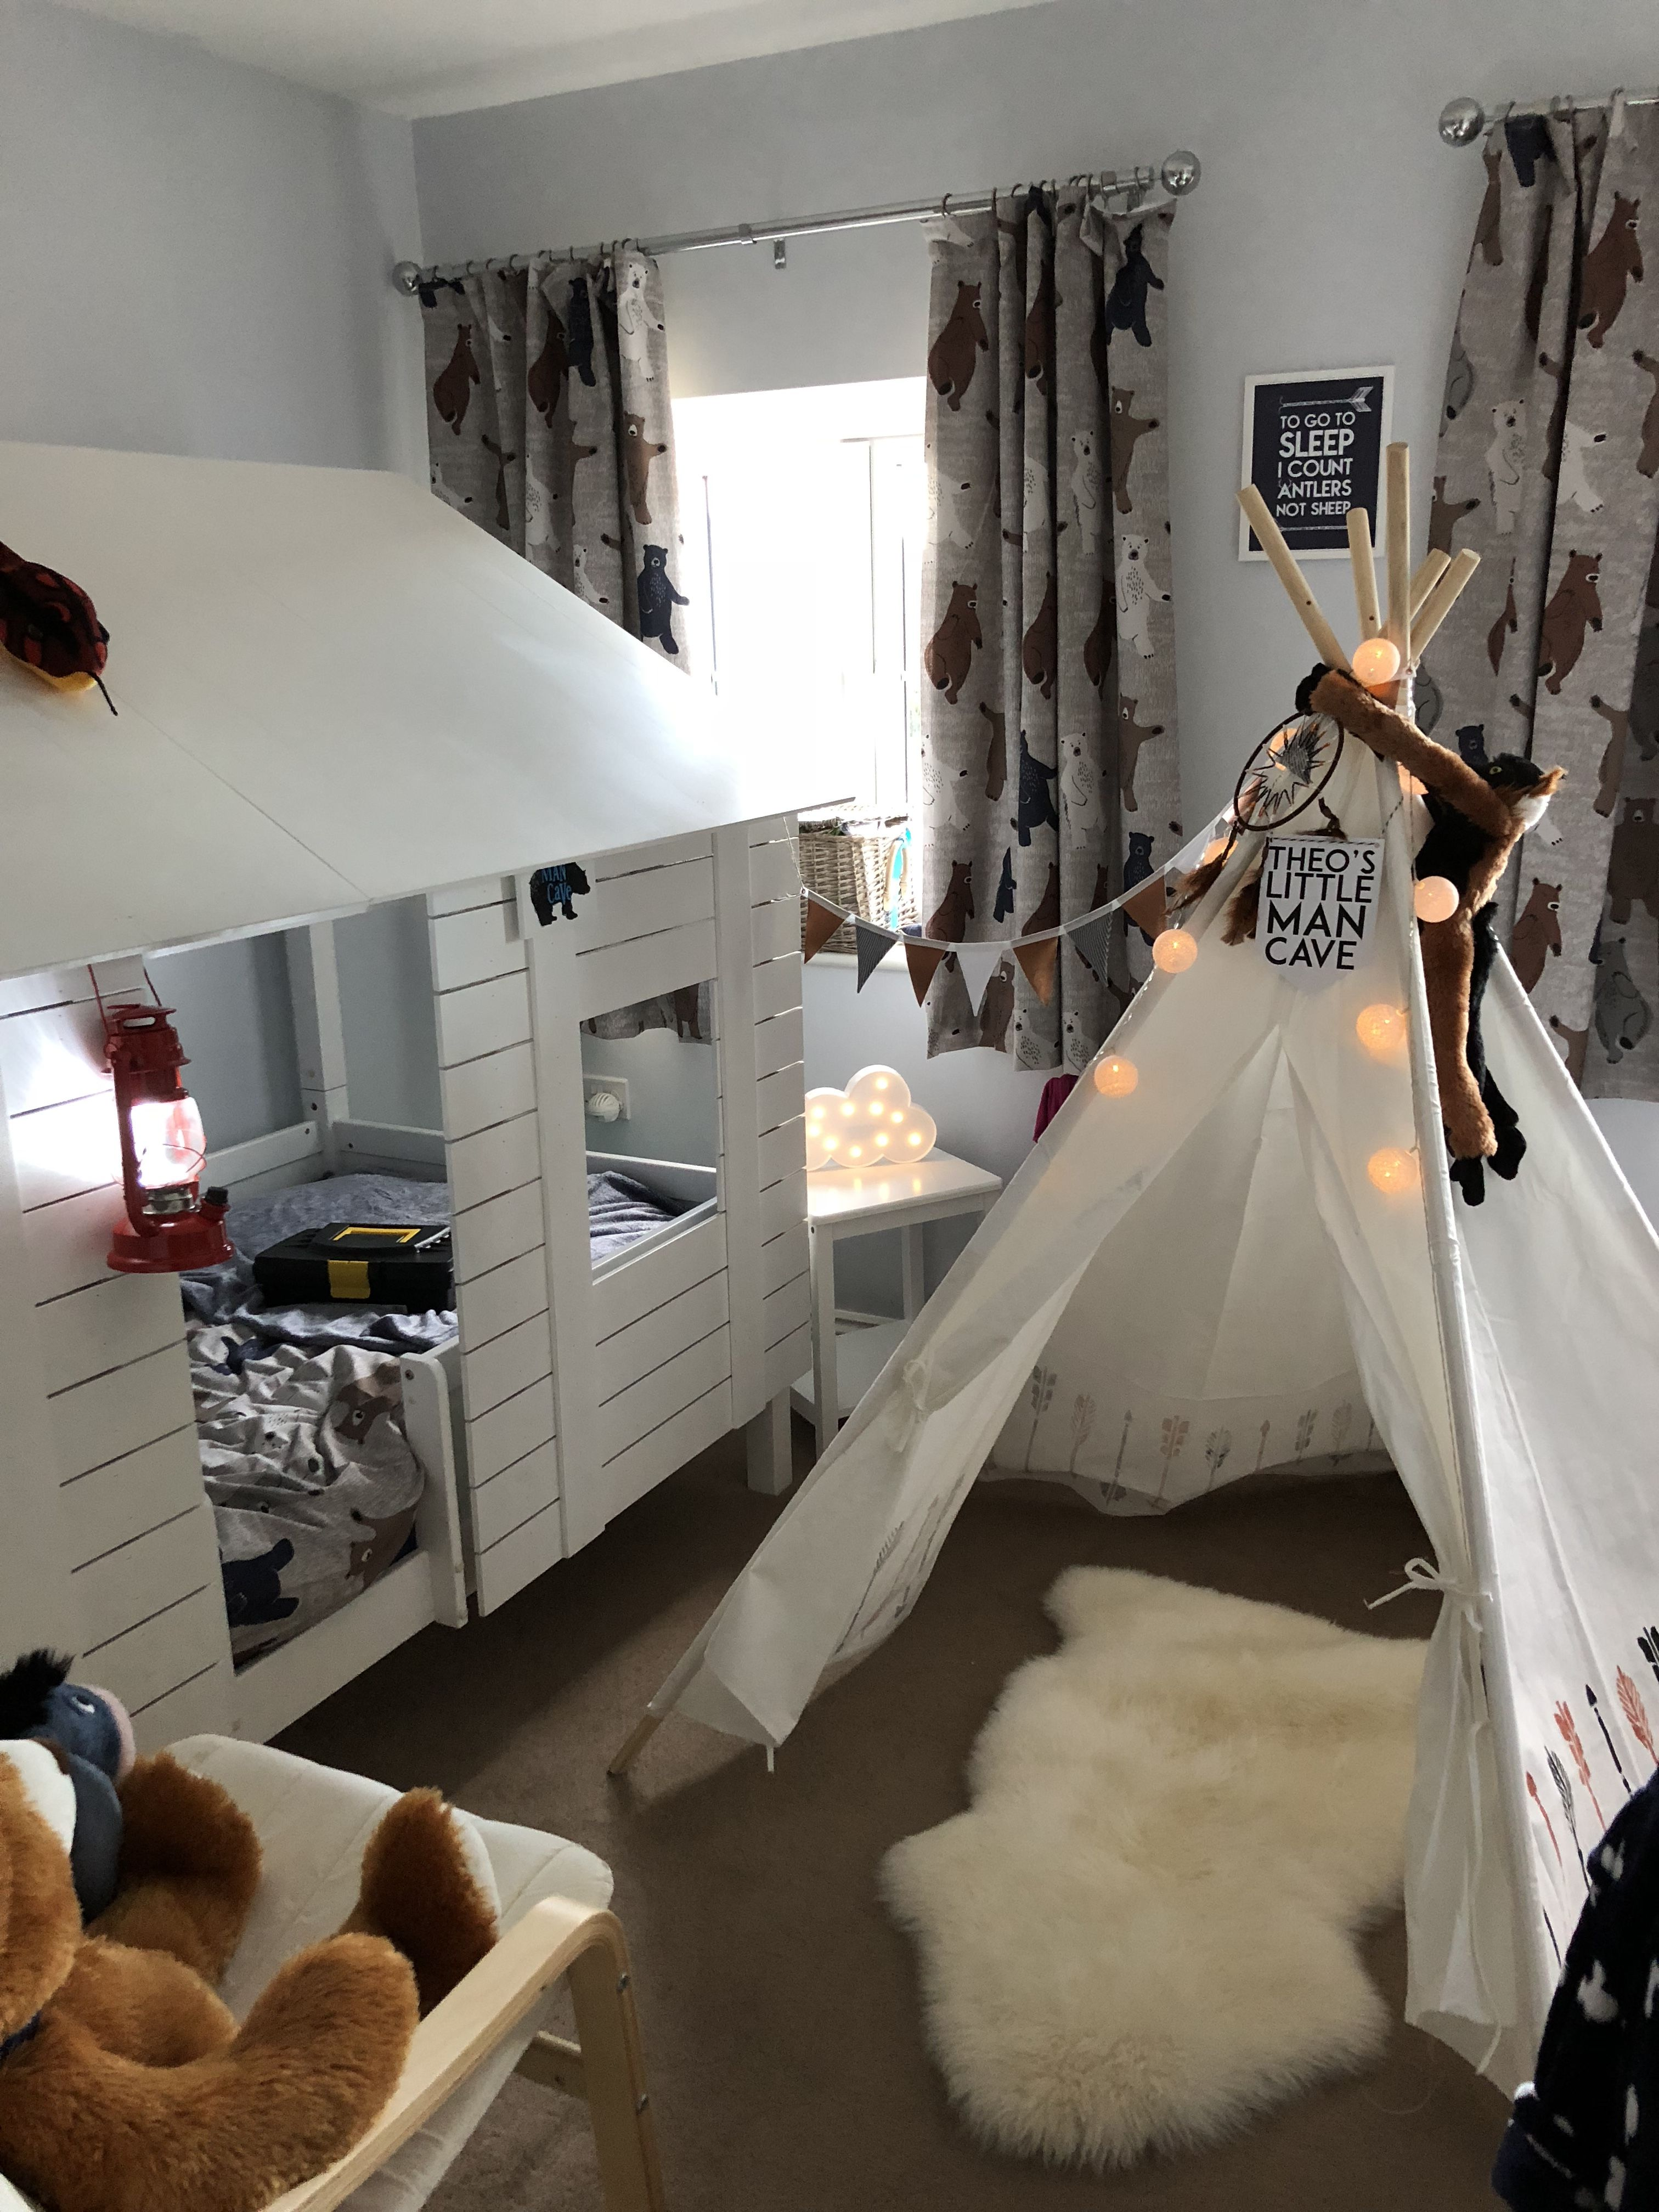 Toddler Bedroom Idea Cabin Bed Teepee Bears Camping Theme Boys Bedroom Themes Toddler Boy